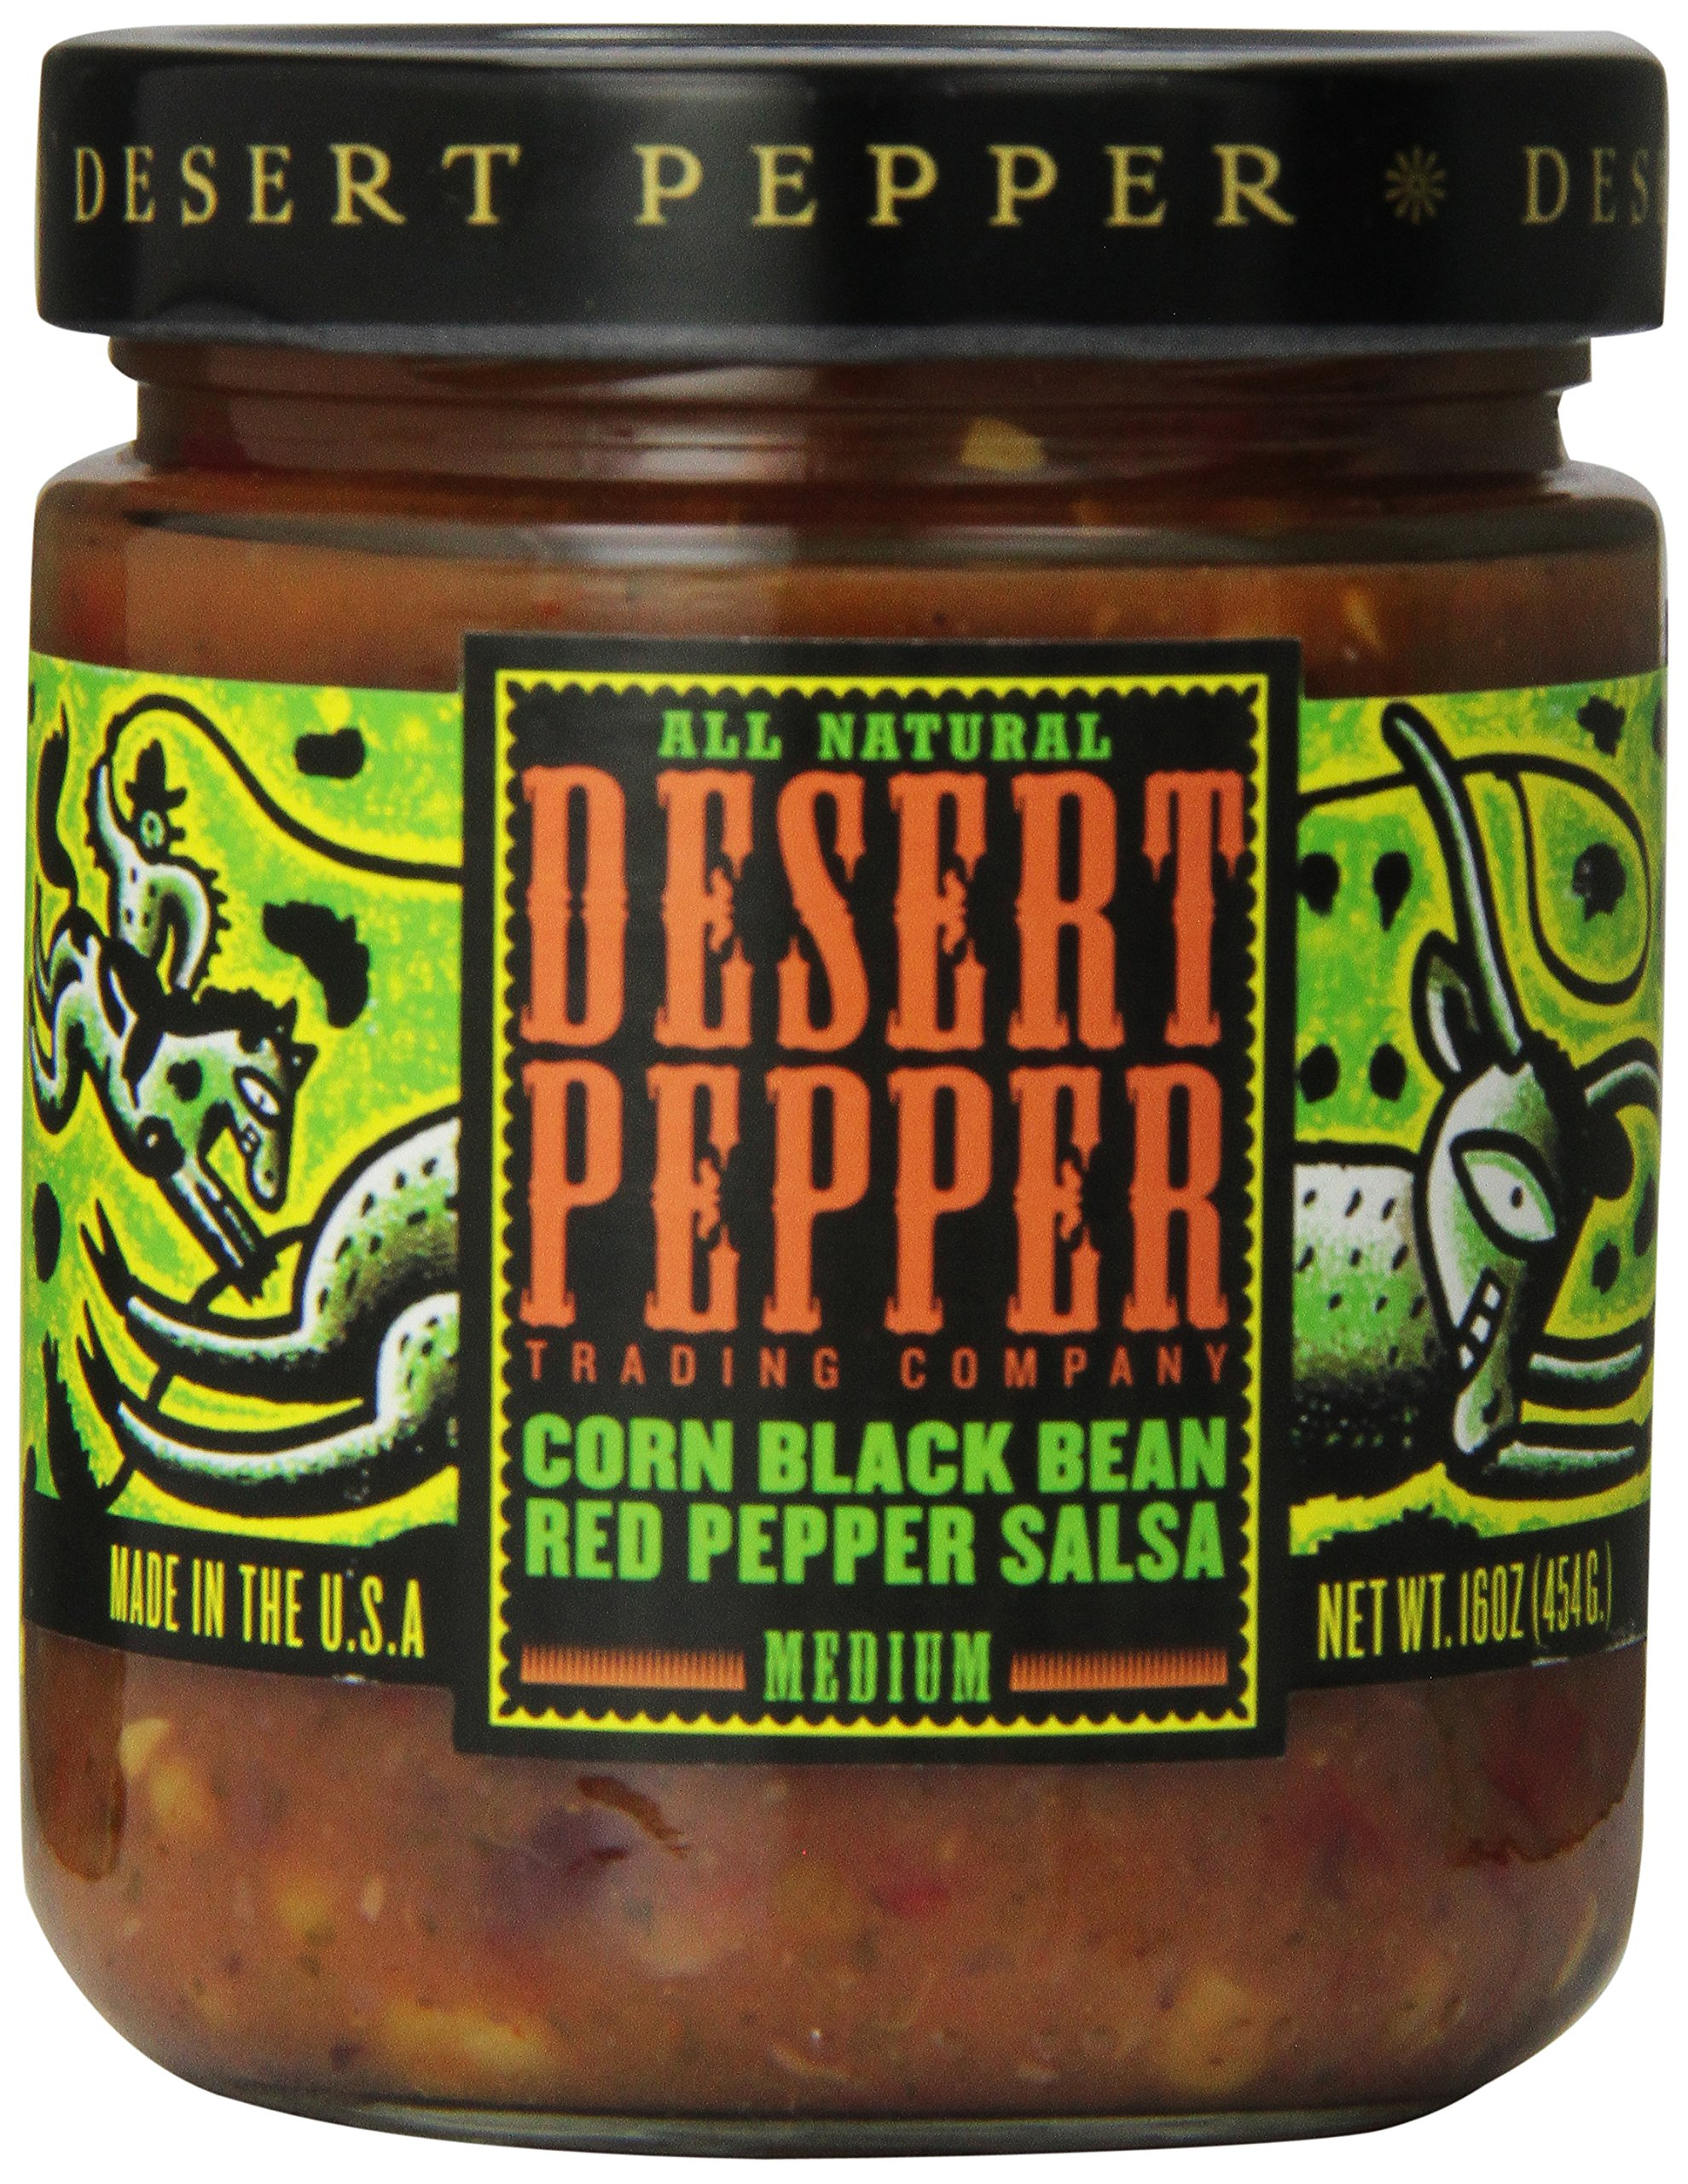 Desert Pepper, Black Bean, Roasted Pepper, and Corn Salsa, 16 oz